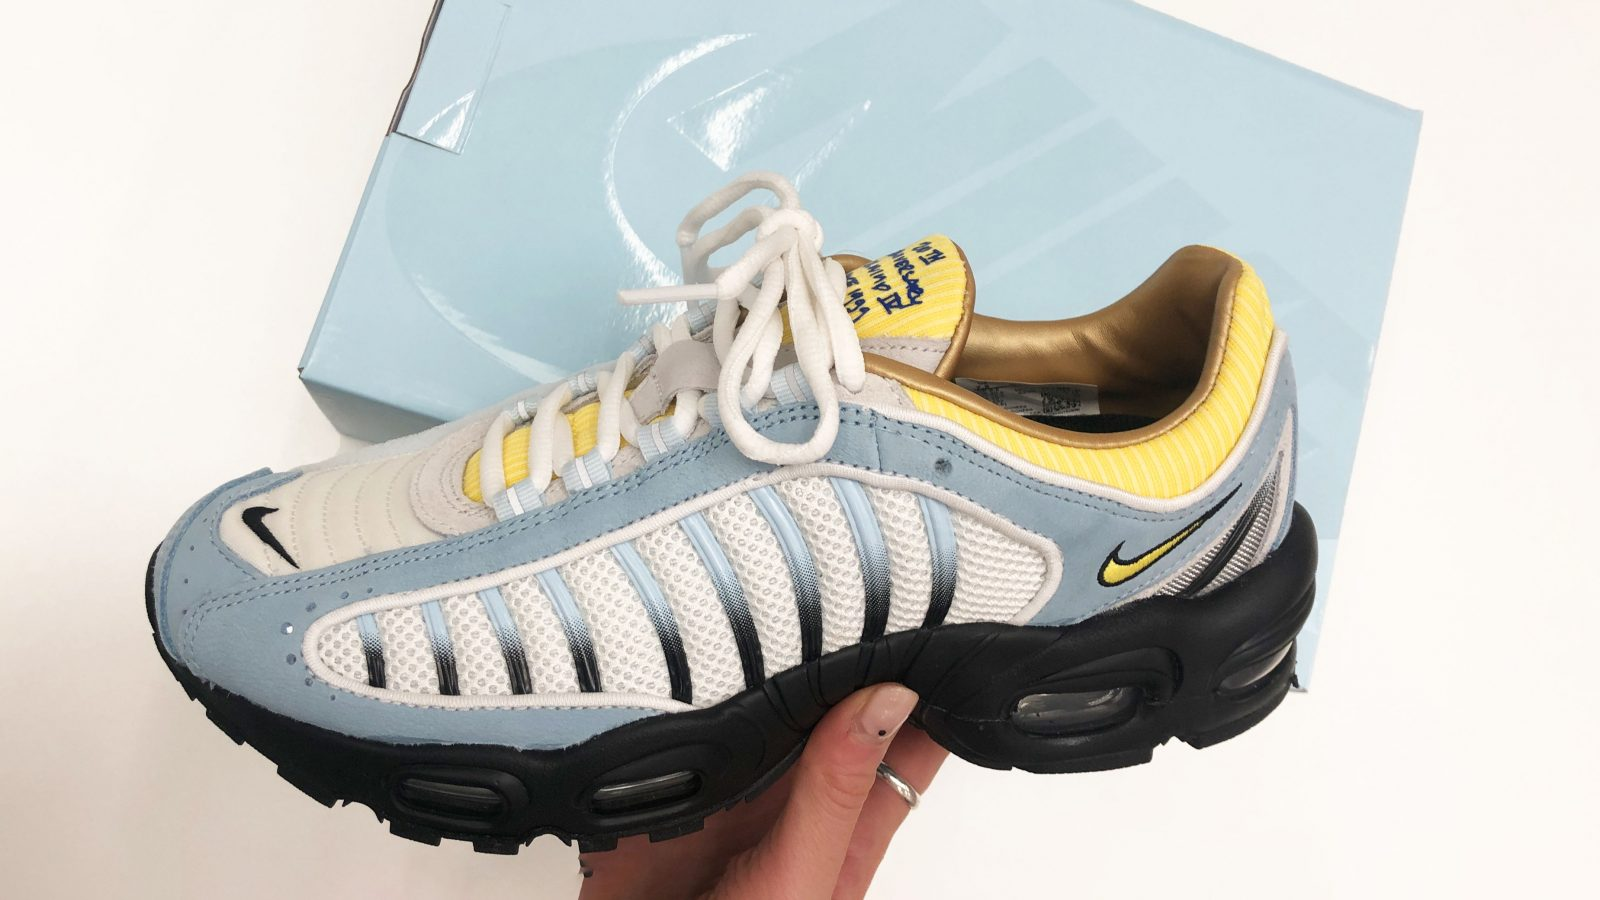 brand new 26608 b3b4e An Exclusive Up Close Look At The SNS x Nike Air Max ...